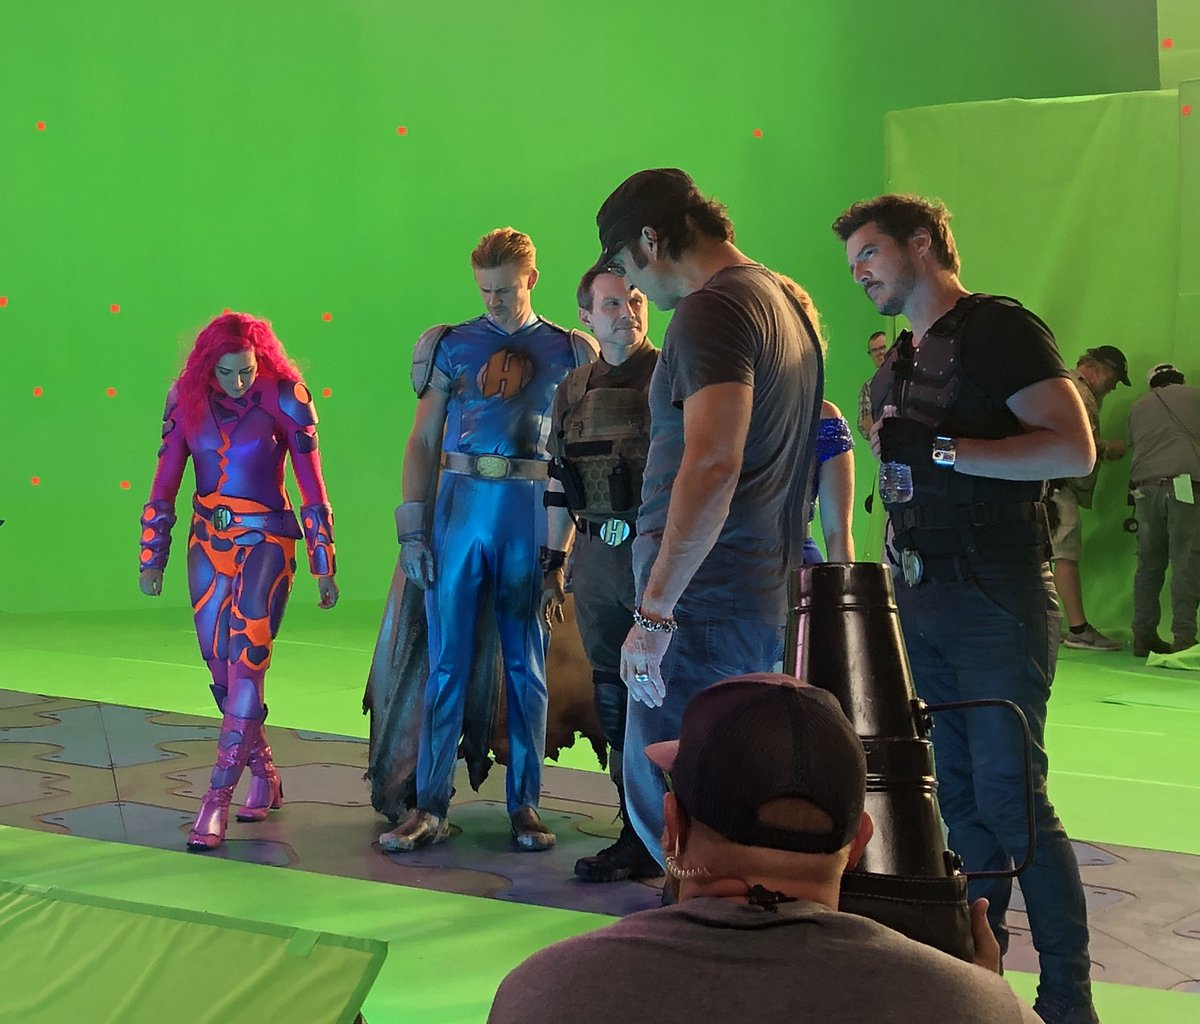 Figuring out where to stand is a complicated thing, good thing we have @Rodriguez 's genius to help us out 😉🤣 #WeCanBeHeroes #BehindTheScenes #Heroics